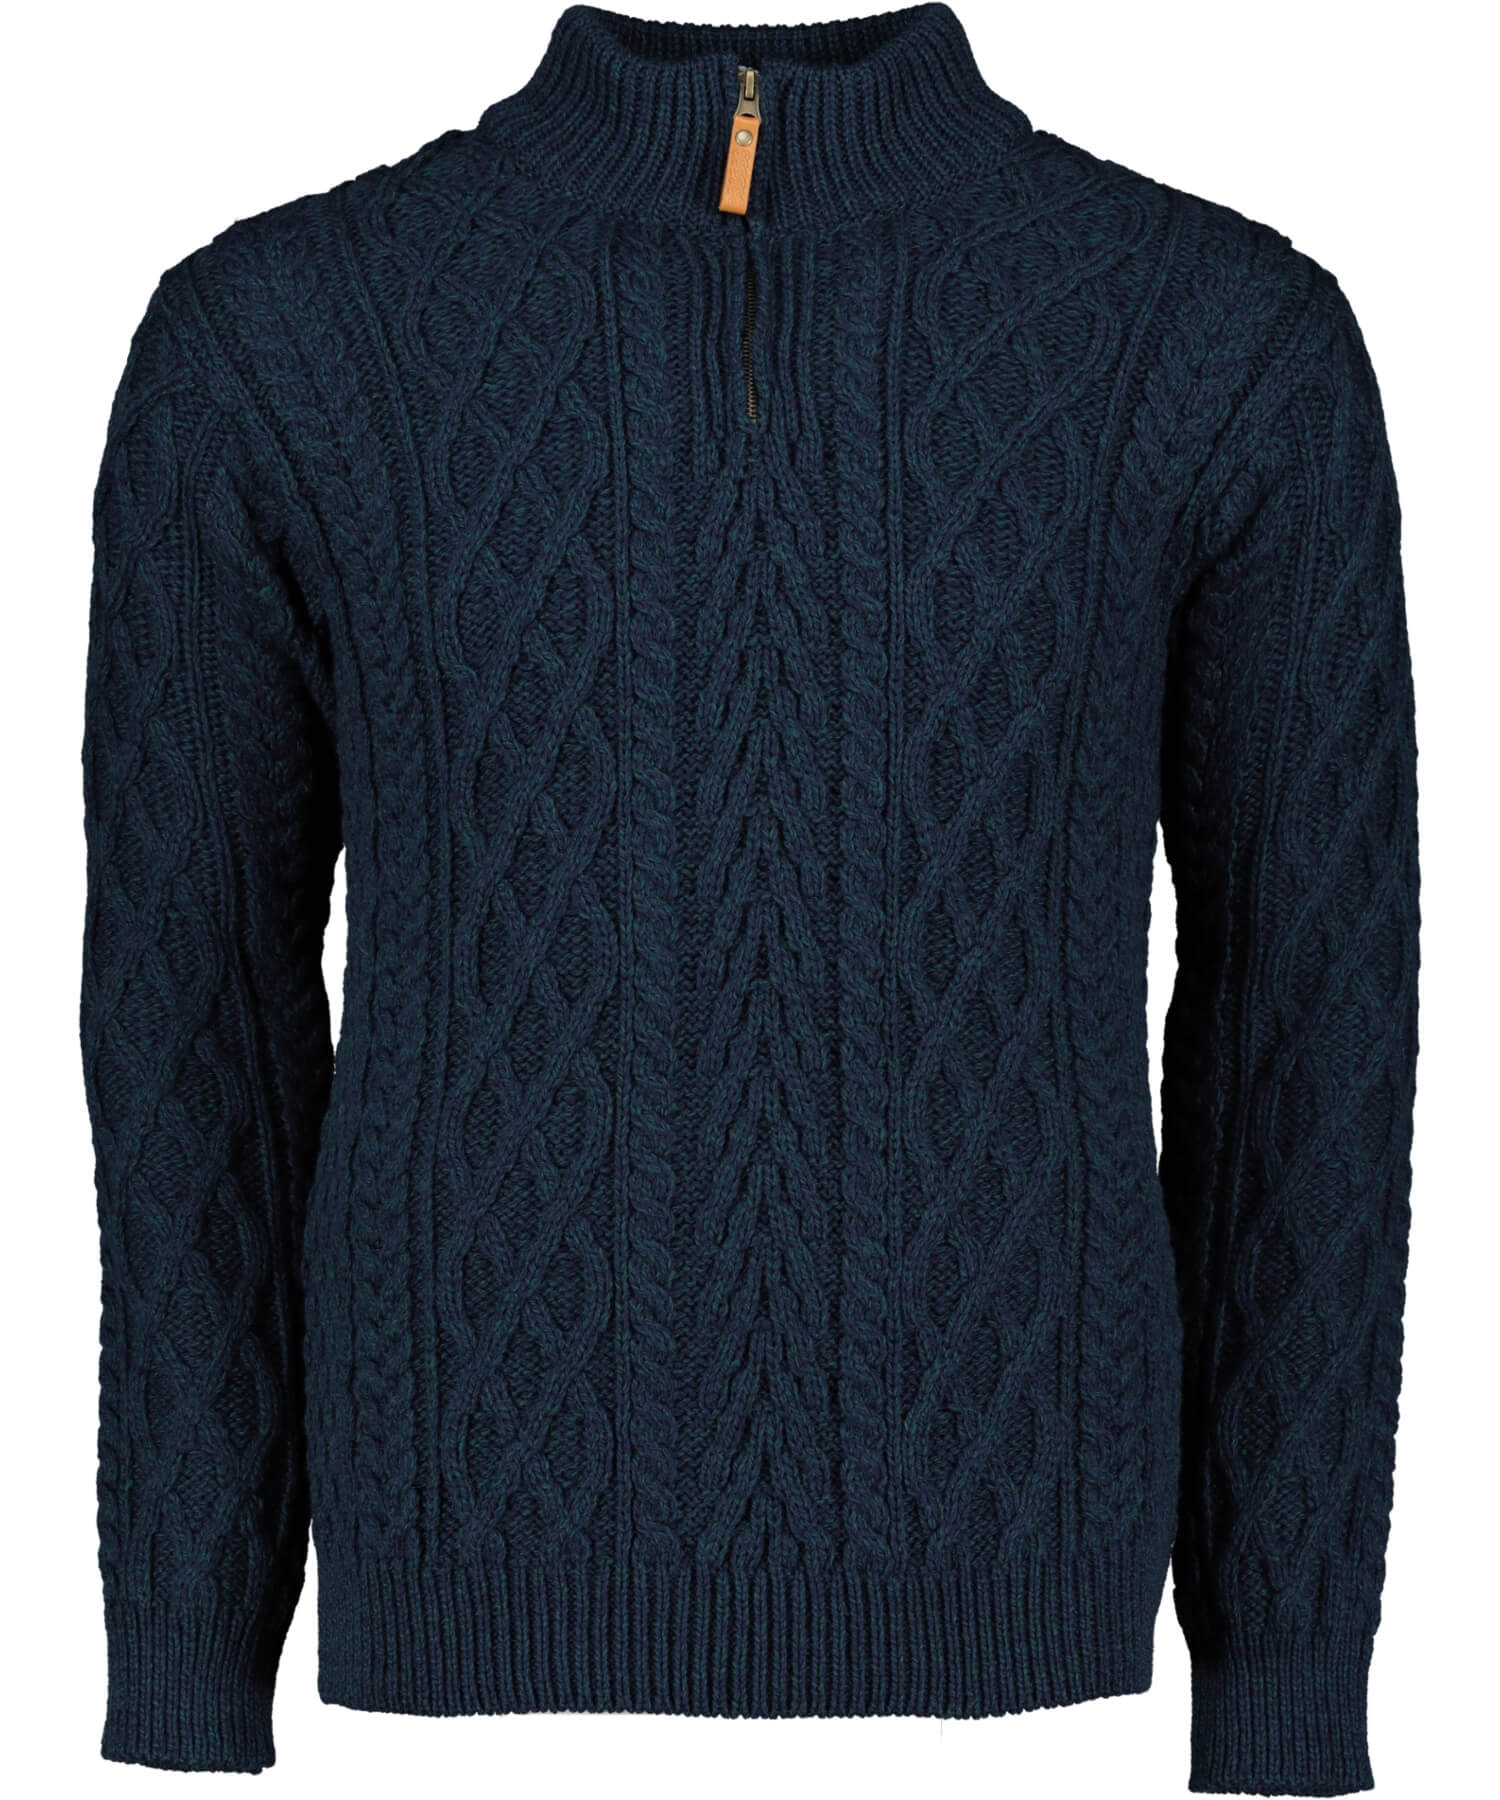 Donegal Half Zip Sweater - Sherwood Aran Crafts Mens Sweaters & Cardigans